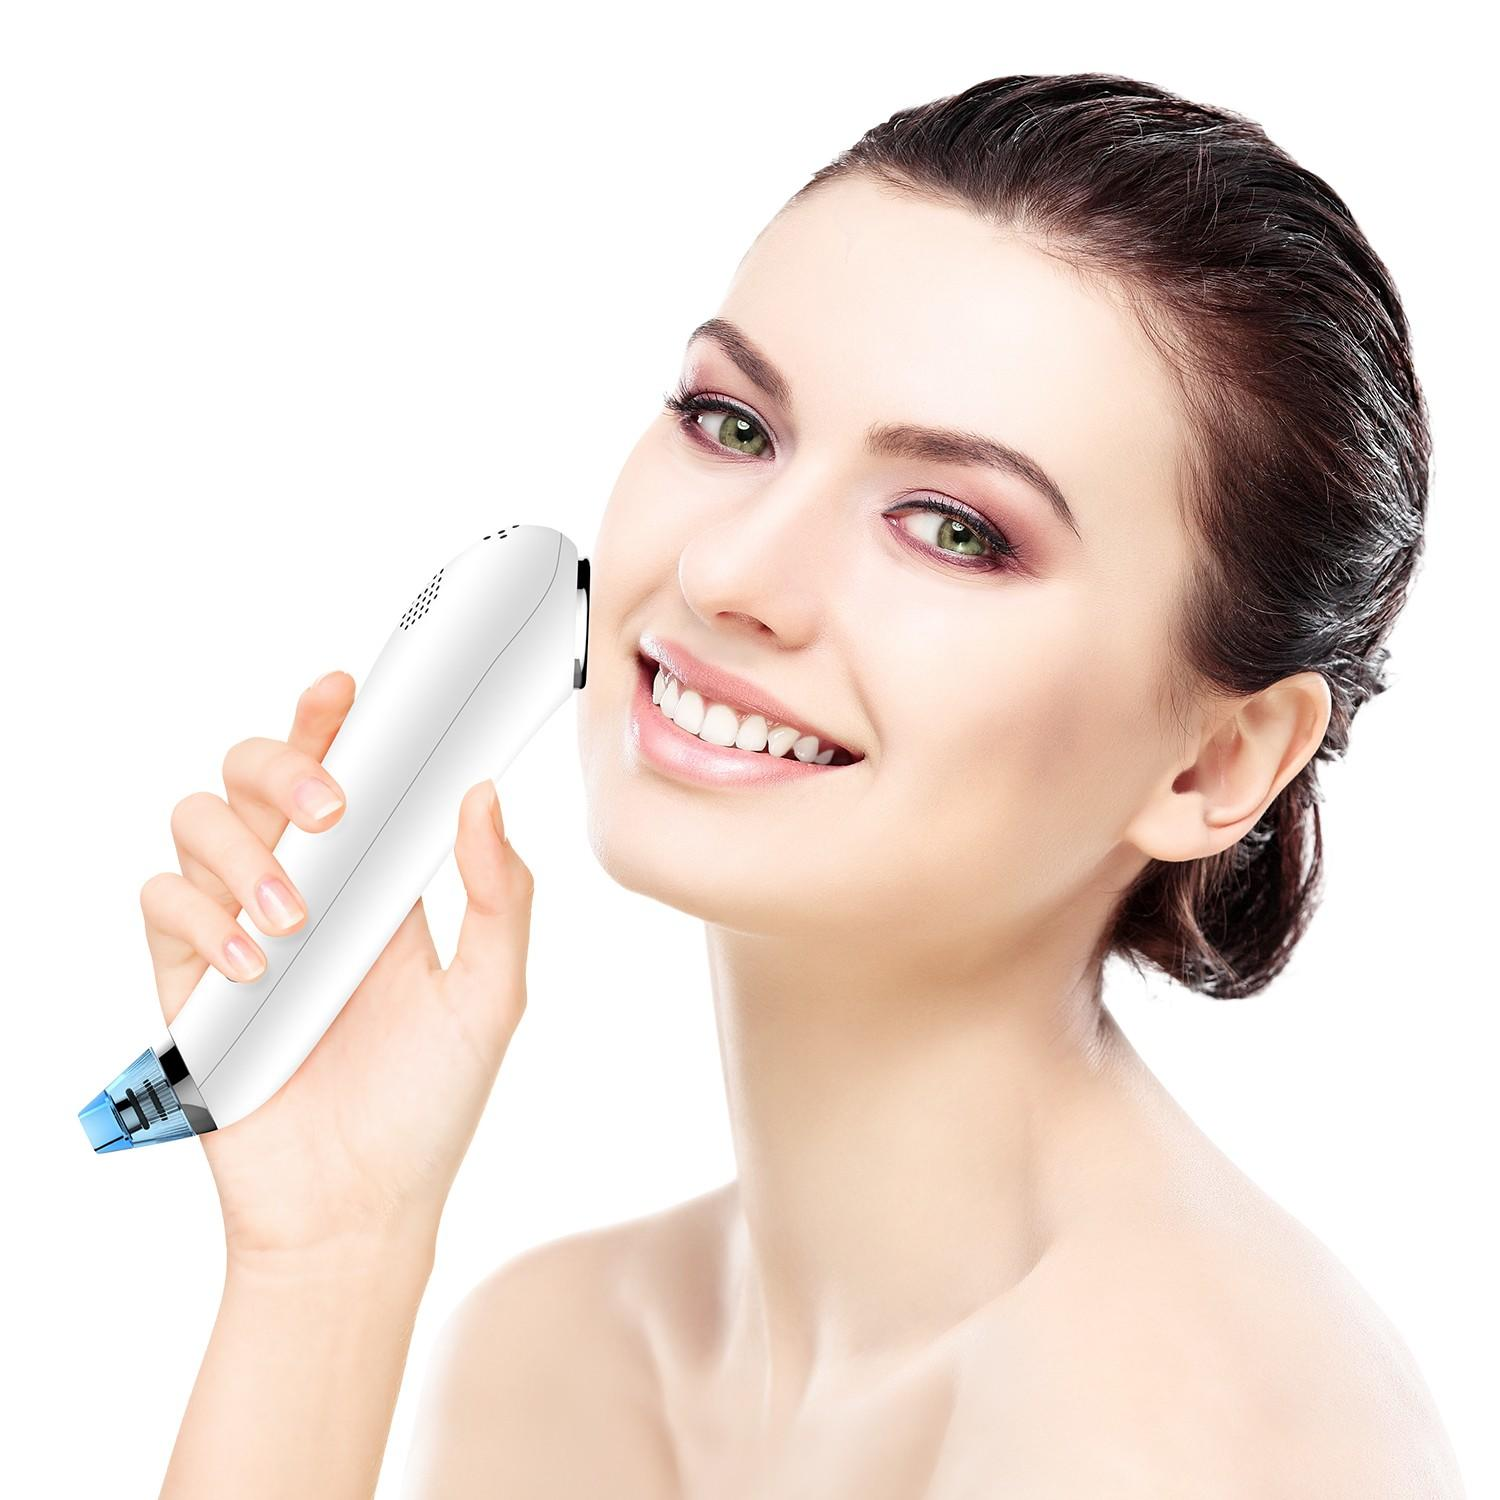 Domas Top led light therapy for skin at home for beauty salon